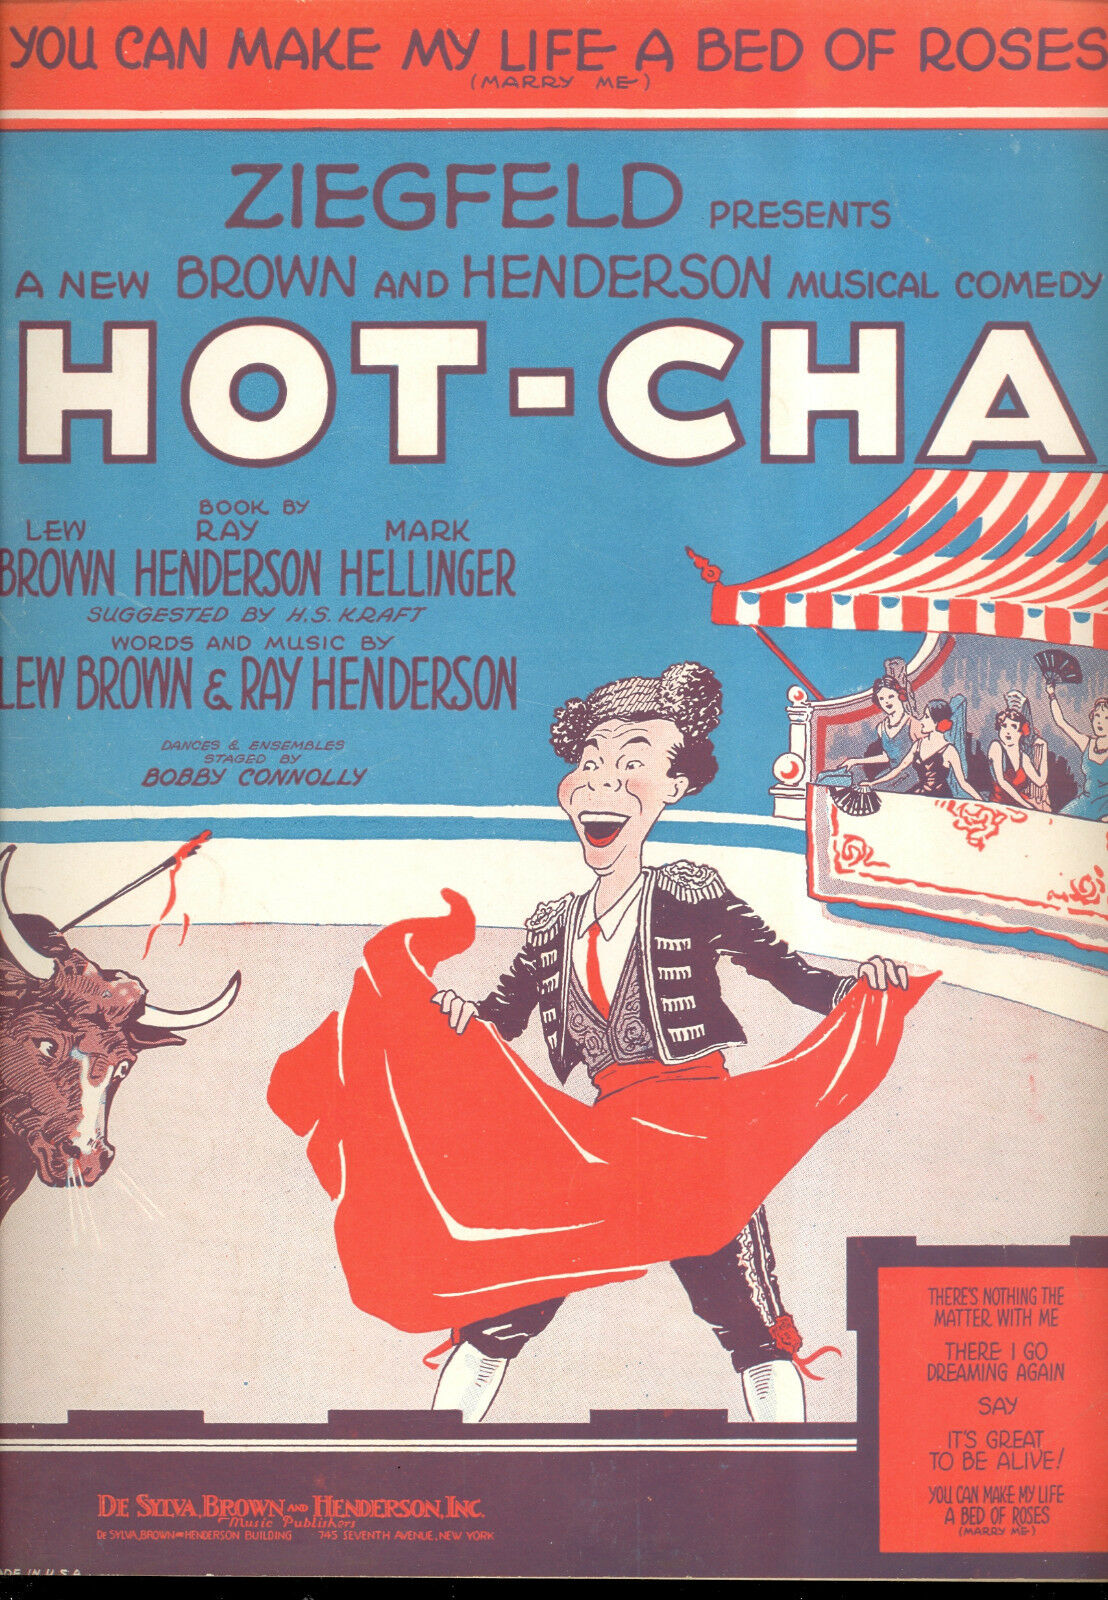 Hot-Cha Broadway show partitura  you can can can make my life a bed of rosados   tomamos a los clientes como nuestro dios